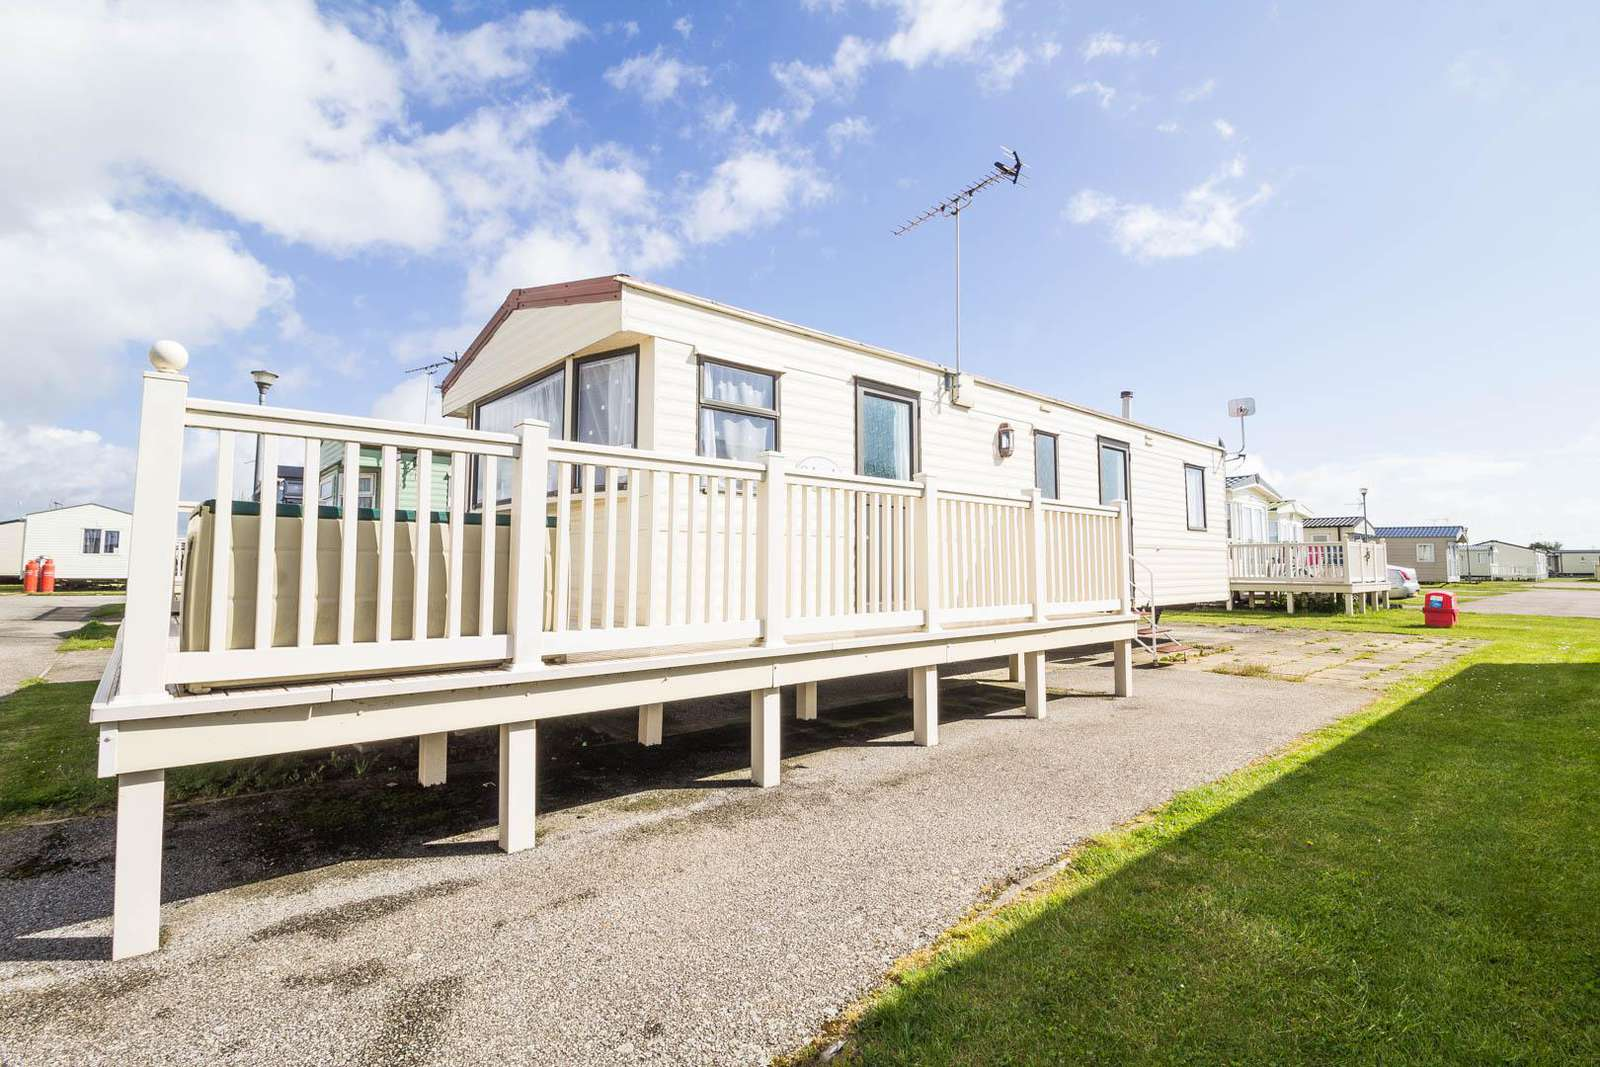 27430S – Seawick, 2 bed, 6 berth caravan with decking. Emerald rated. - property